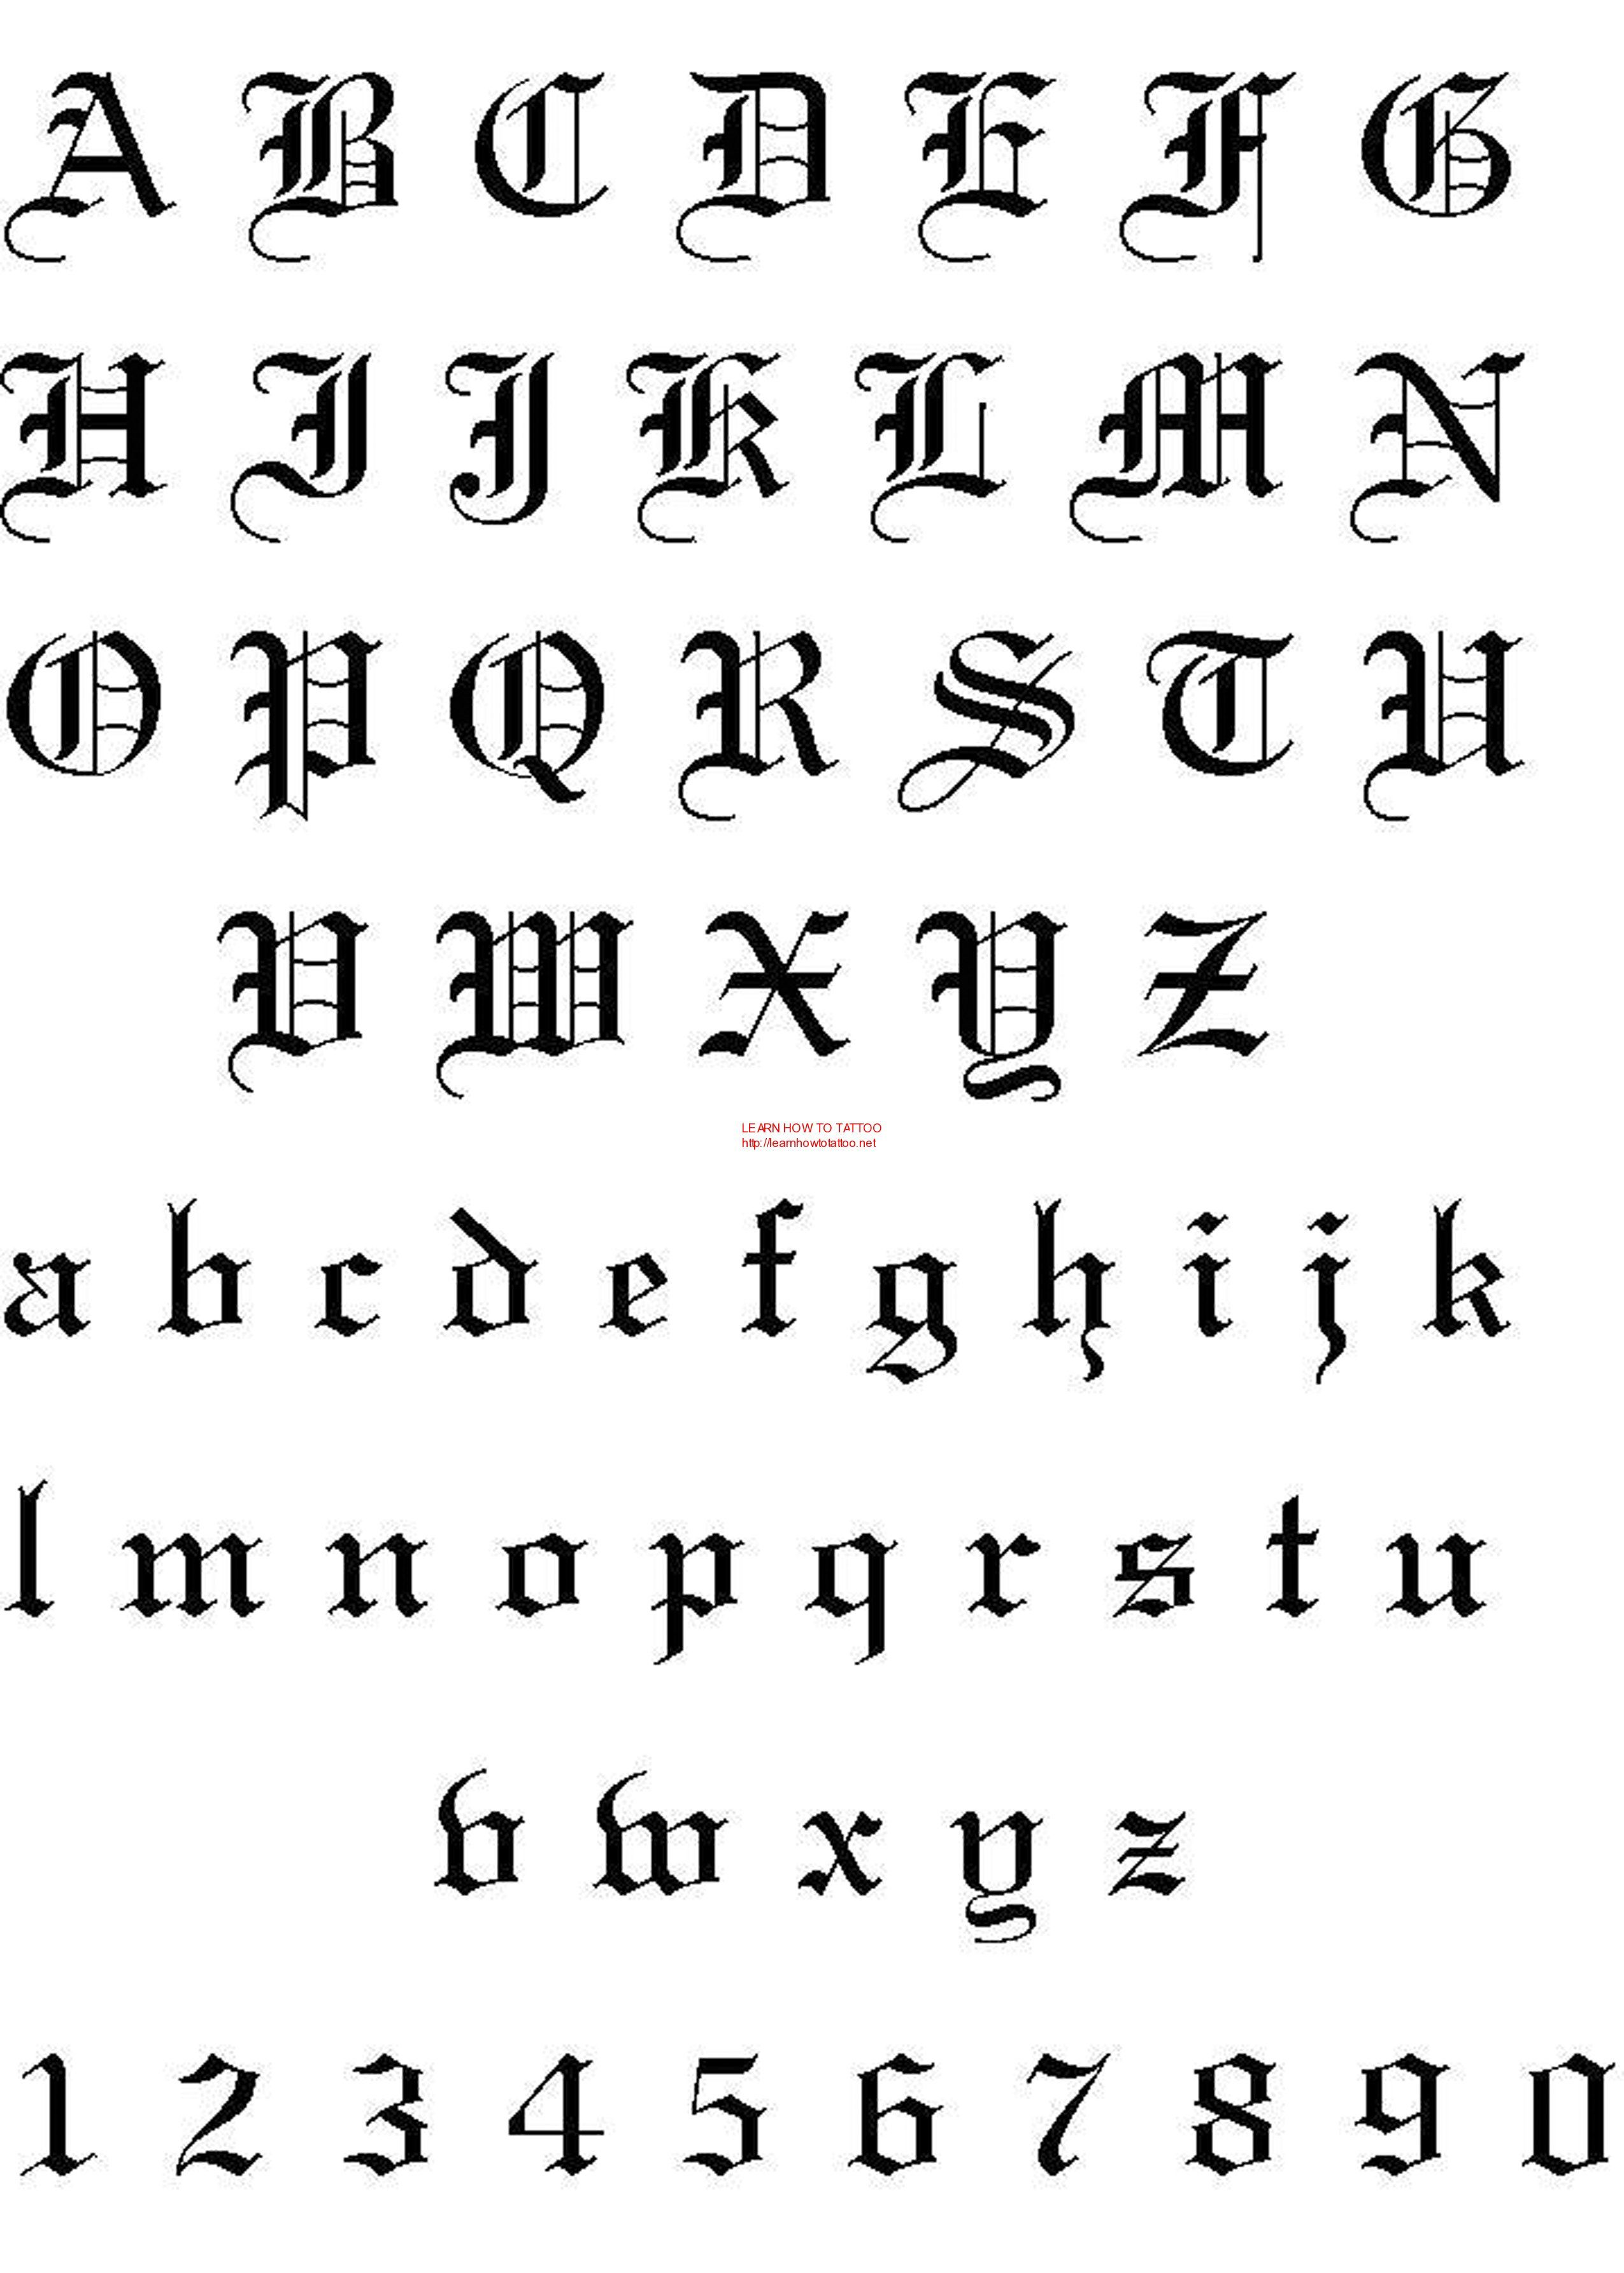 TATTOO FONTS … Calligraphy tattoo